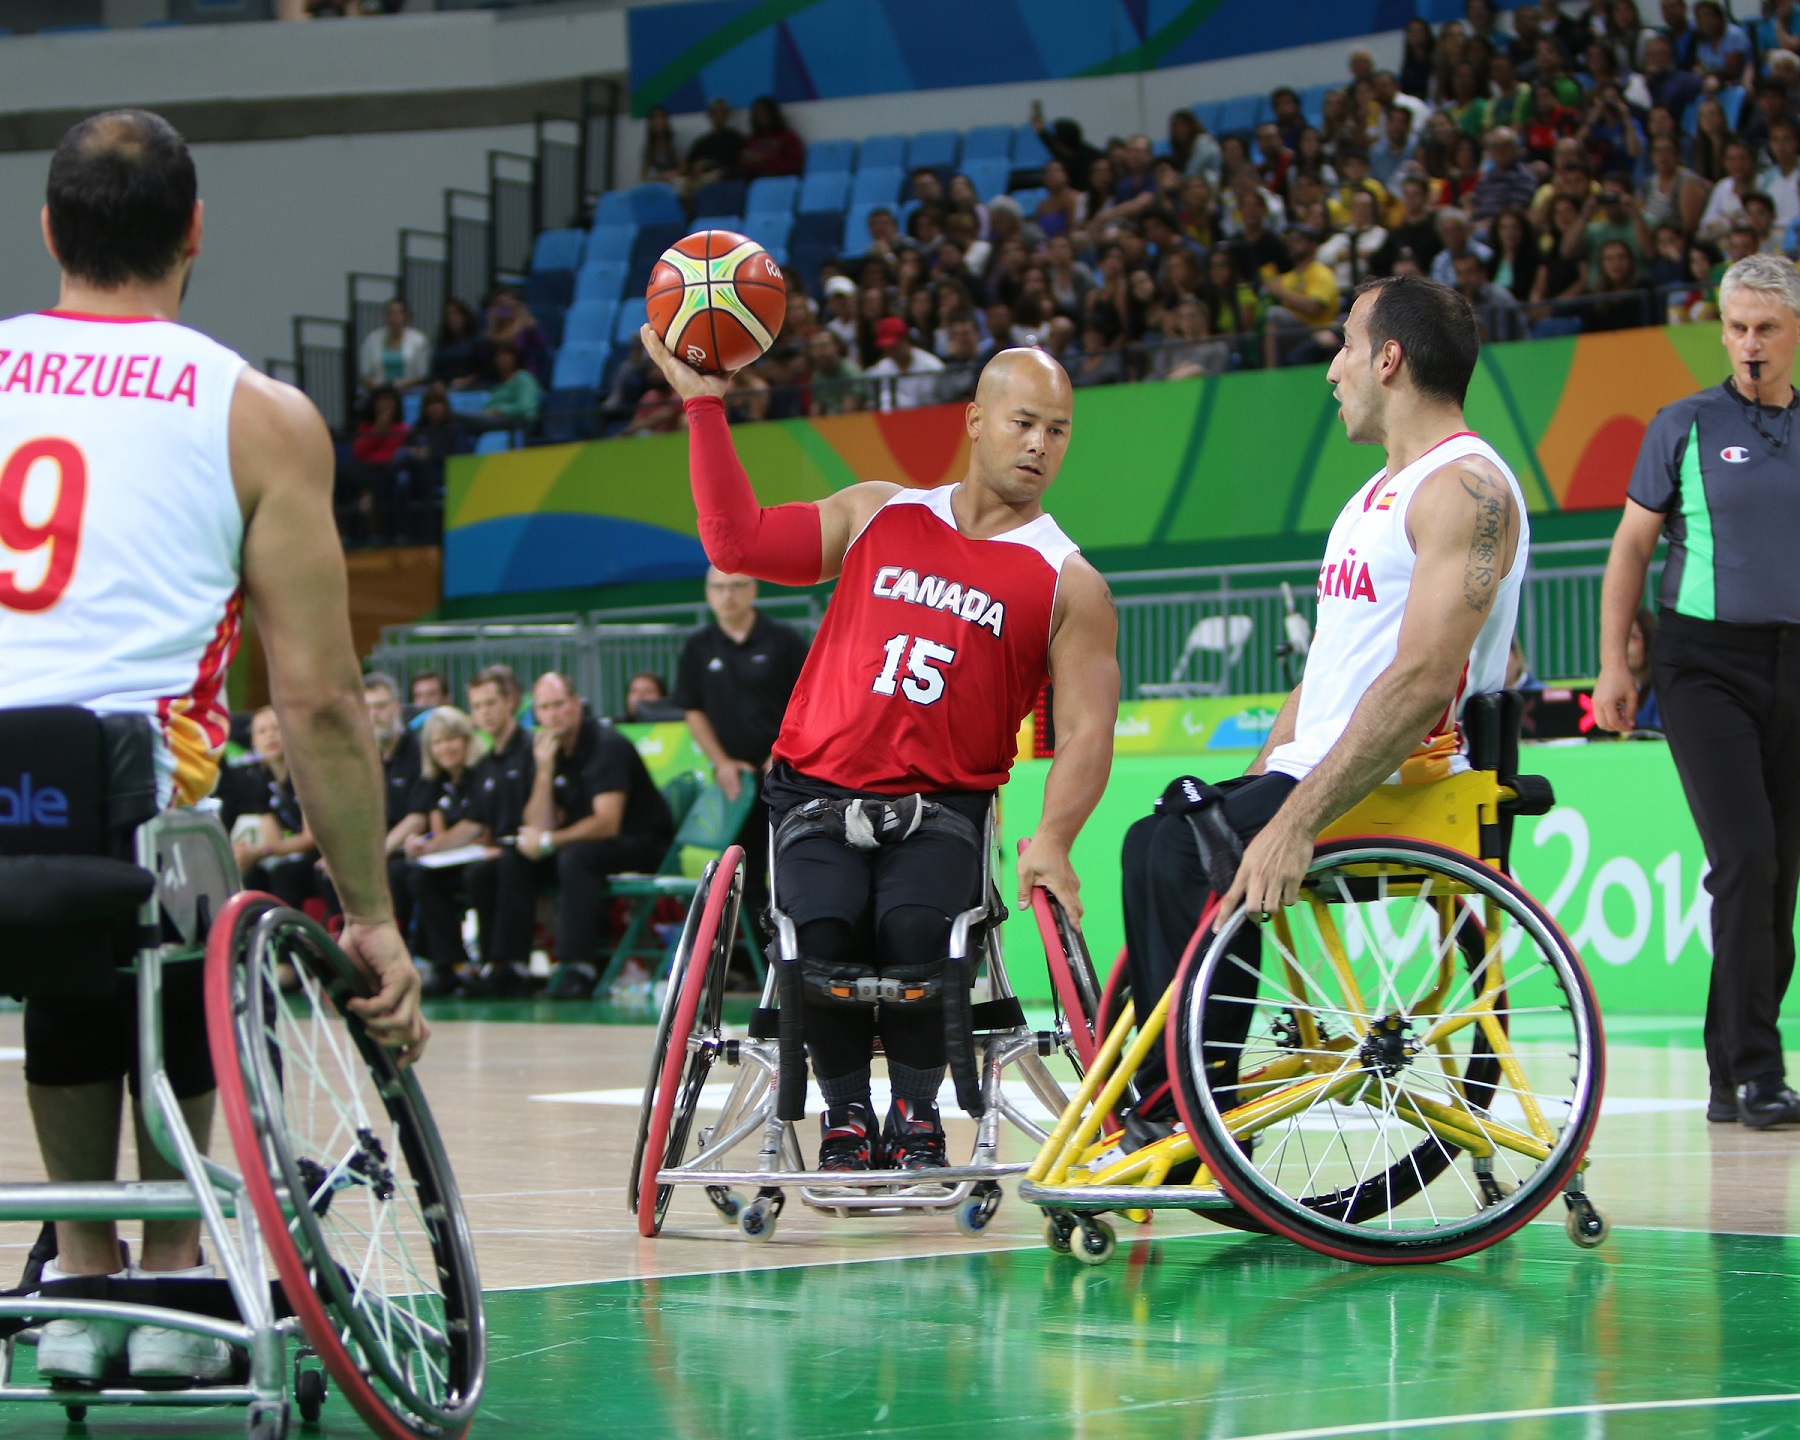 David Eng competes in wheelchair basketball at the Rio 2016 Paralympic Games.